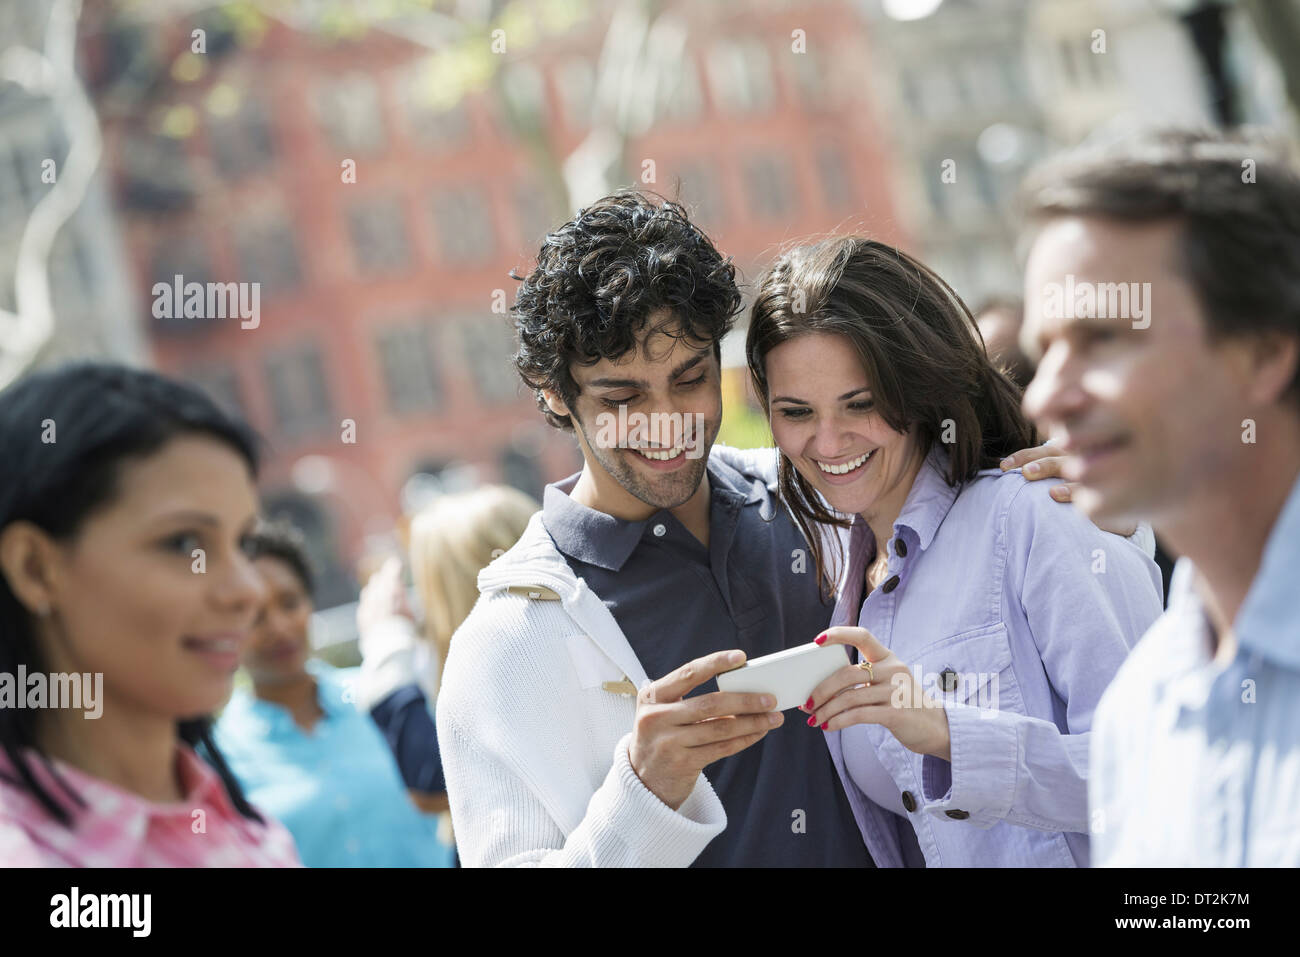 a couple at the centre looking at a cell phone - Stock Image